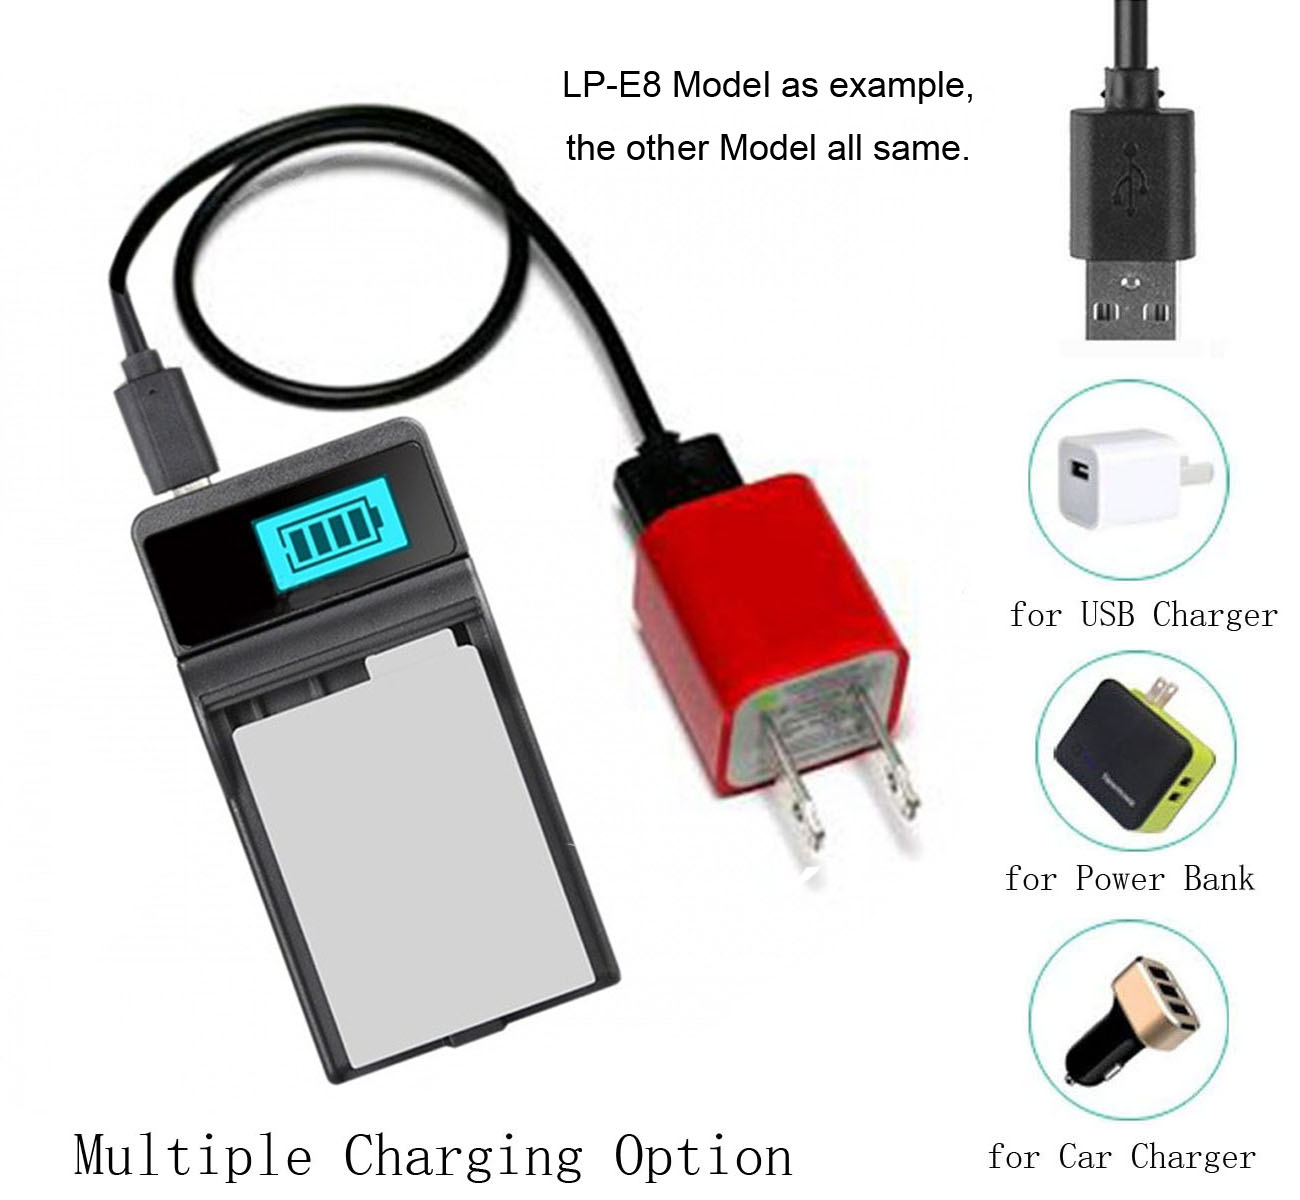 GZ-MG365U Camcorder GZ-MG360U Battery 2 Pack and LCD USB Battery Charger for JVC Everio GZ-MG360 GZ-MG365